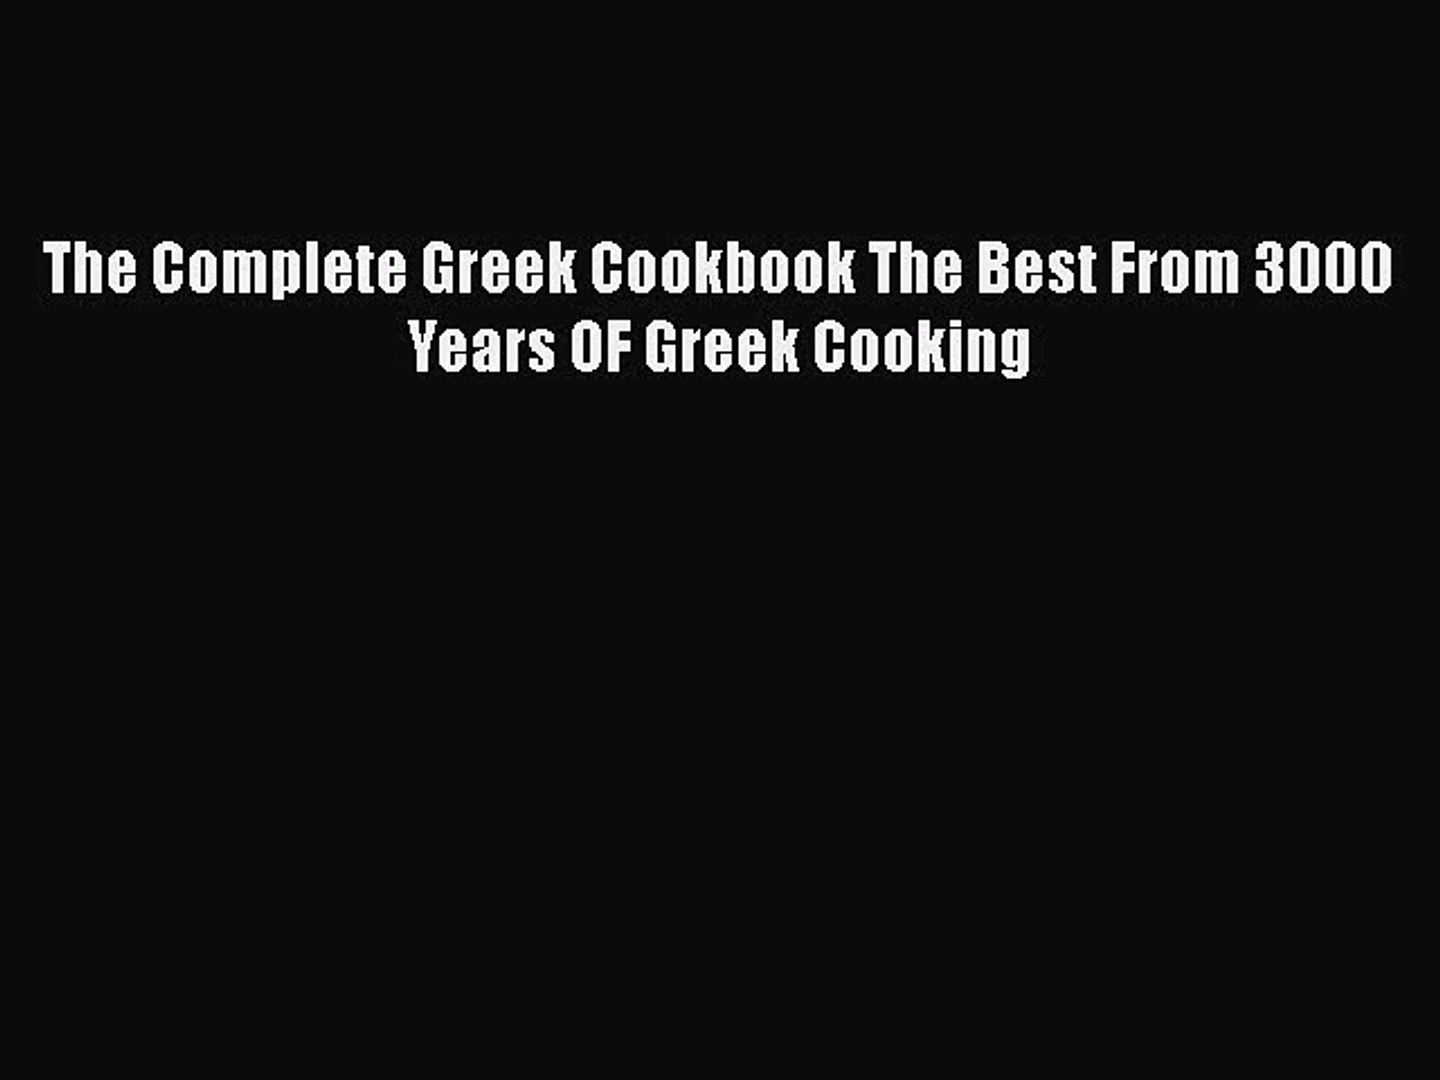 Read Books The Complete Greek Cookbook The Best From 3000 Years OF Greek Cooking E-Book Free